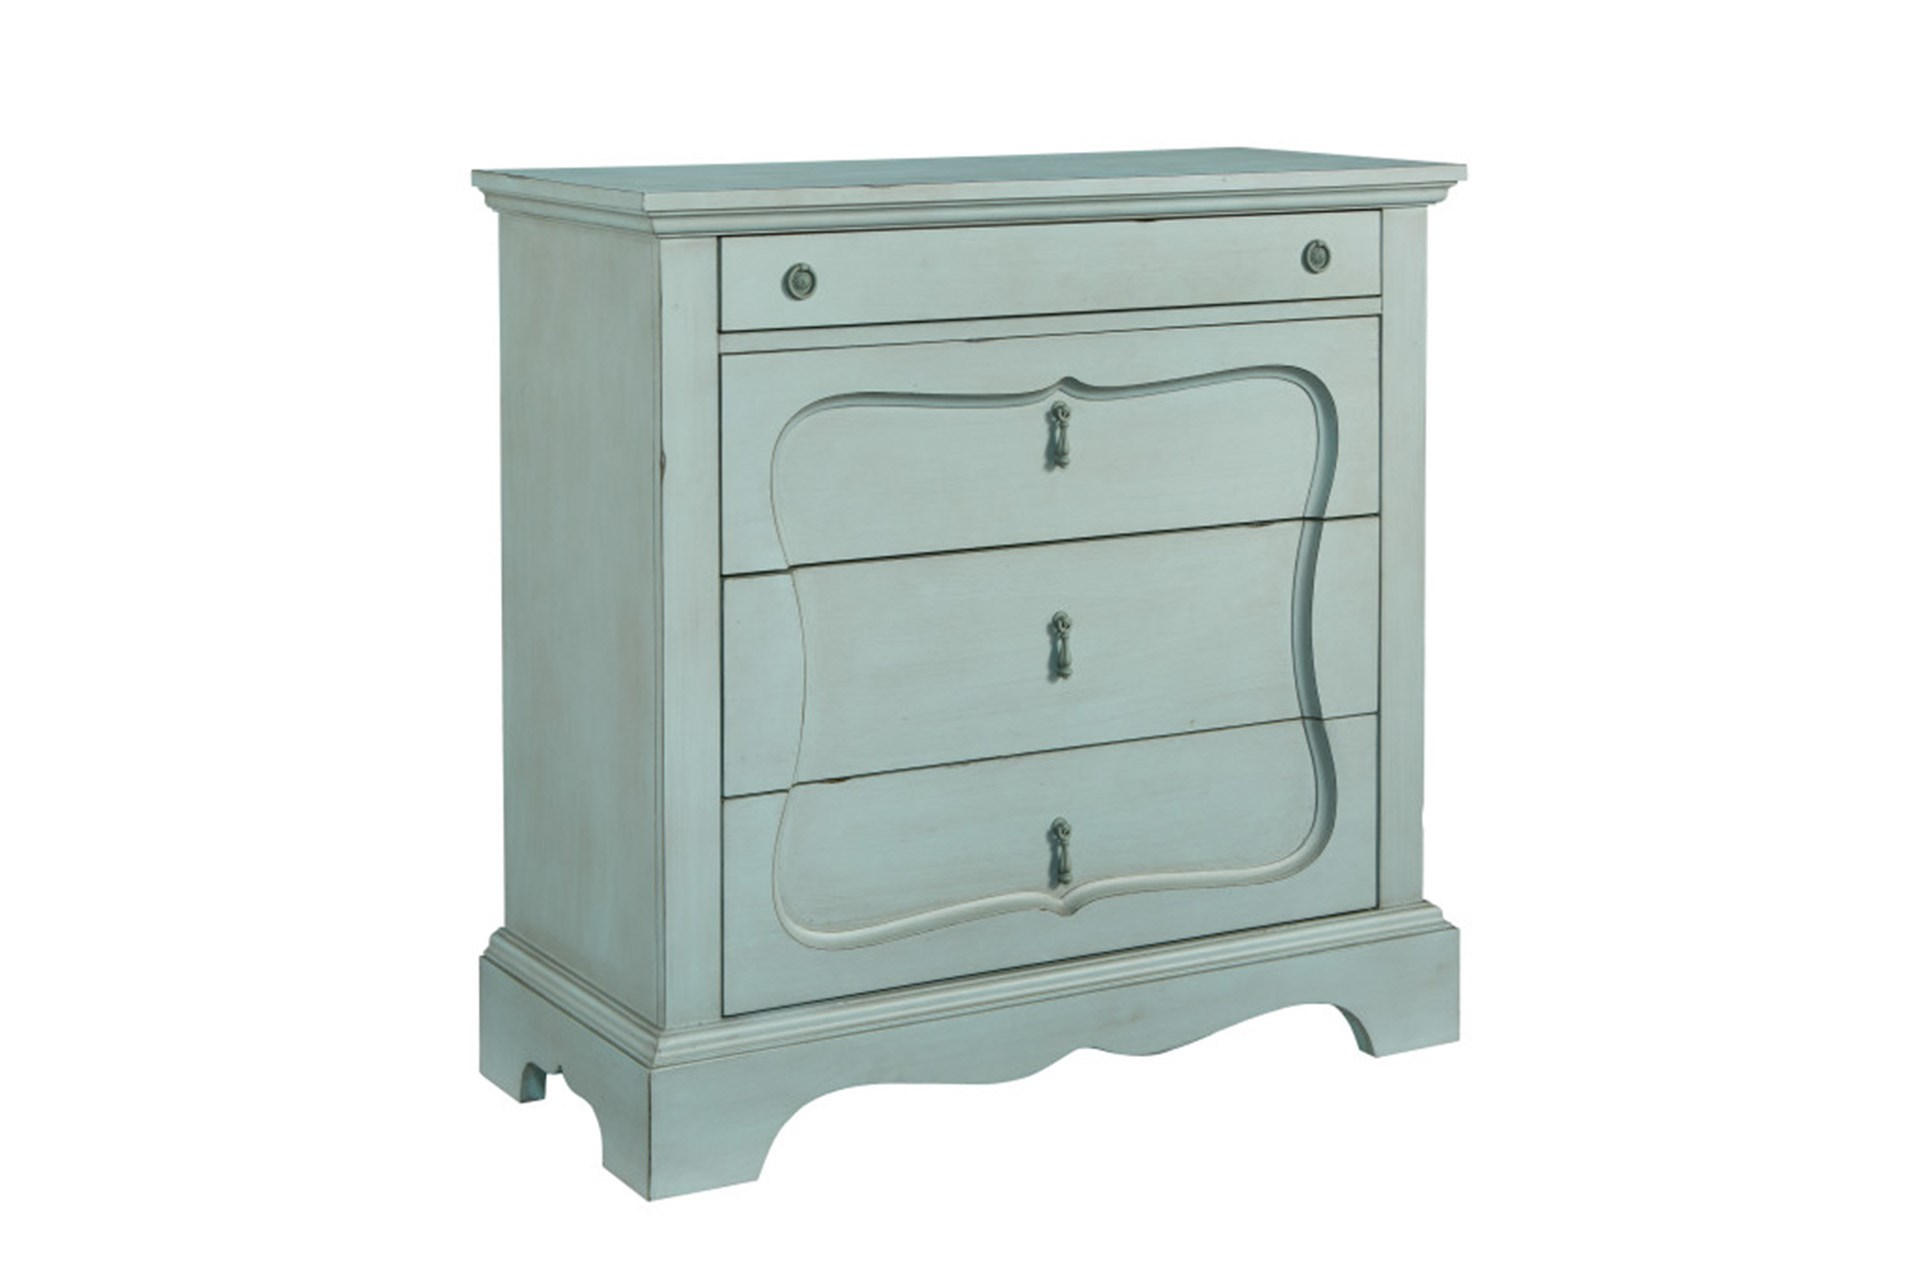 Magnolia home silhouette french blue 4 drawer chest by joanna gaines qty 1 has been successfully added to your cart